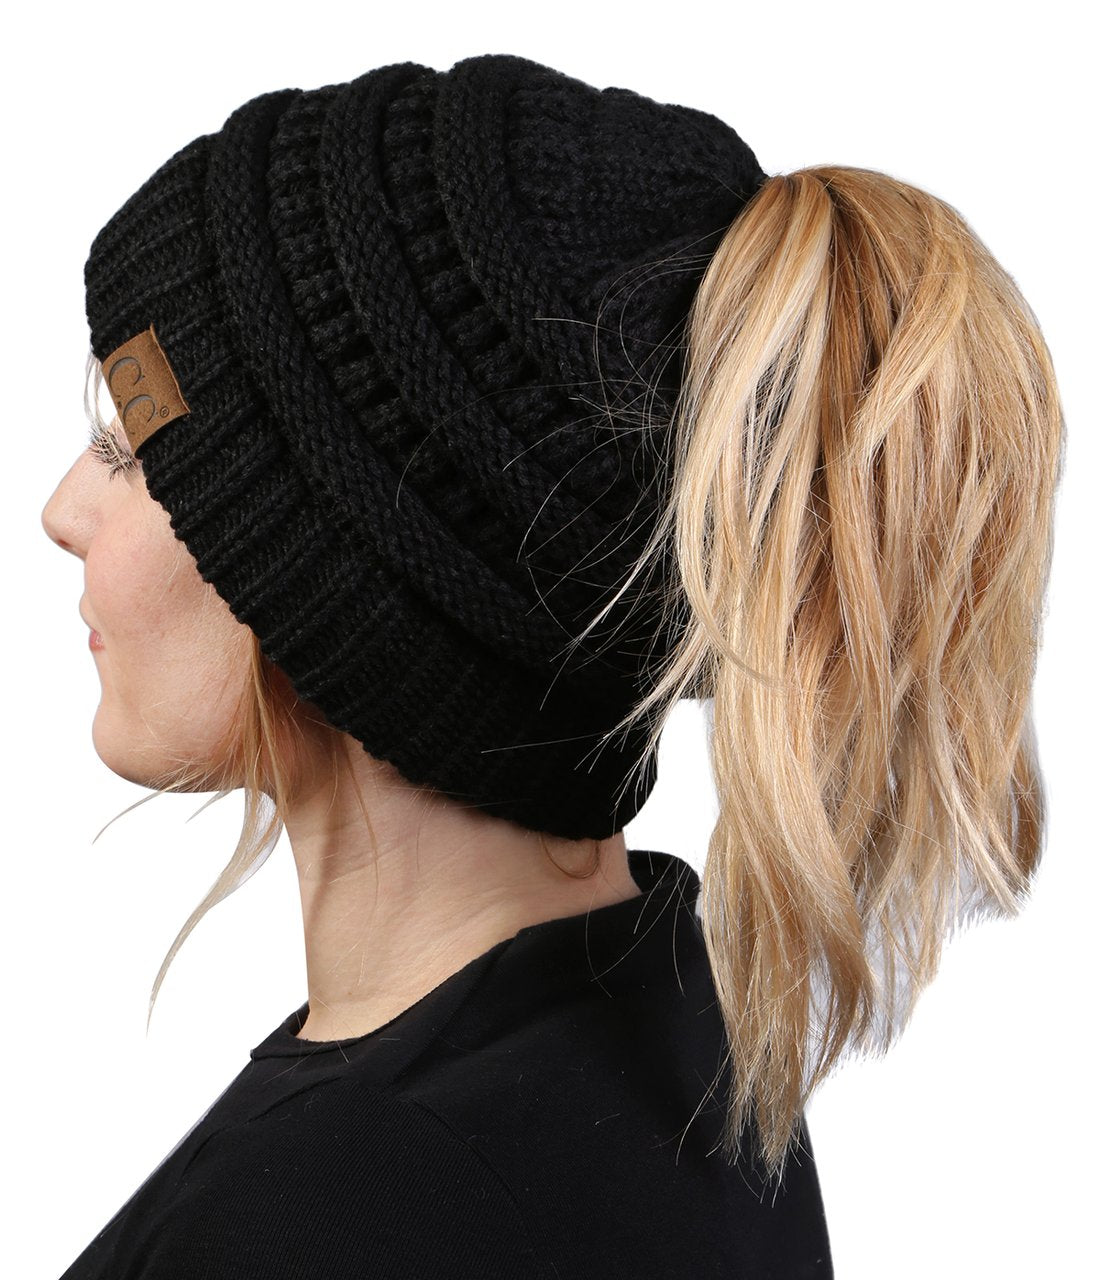 'C.C®' Beanietail - Black